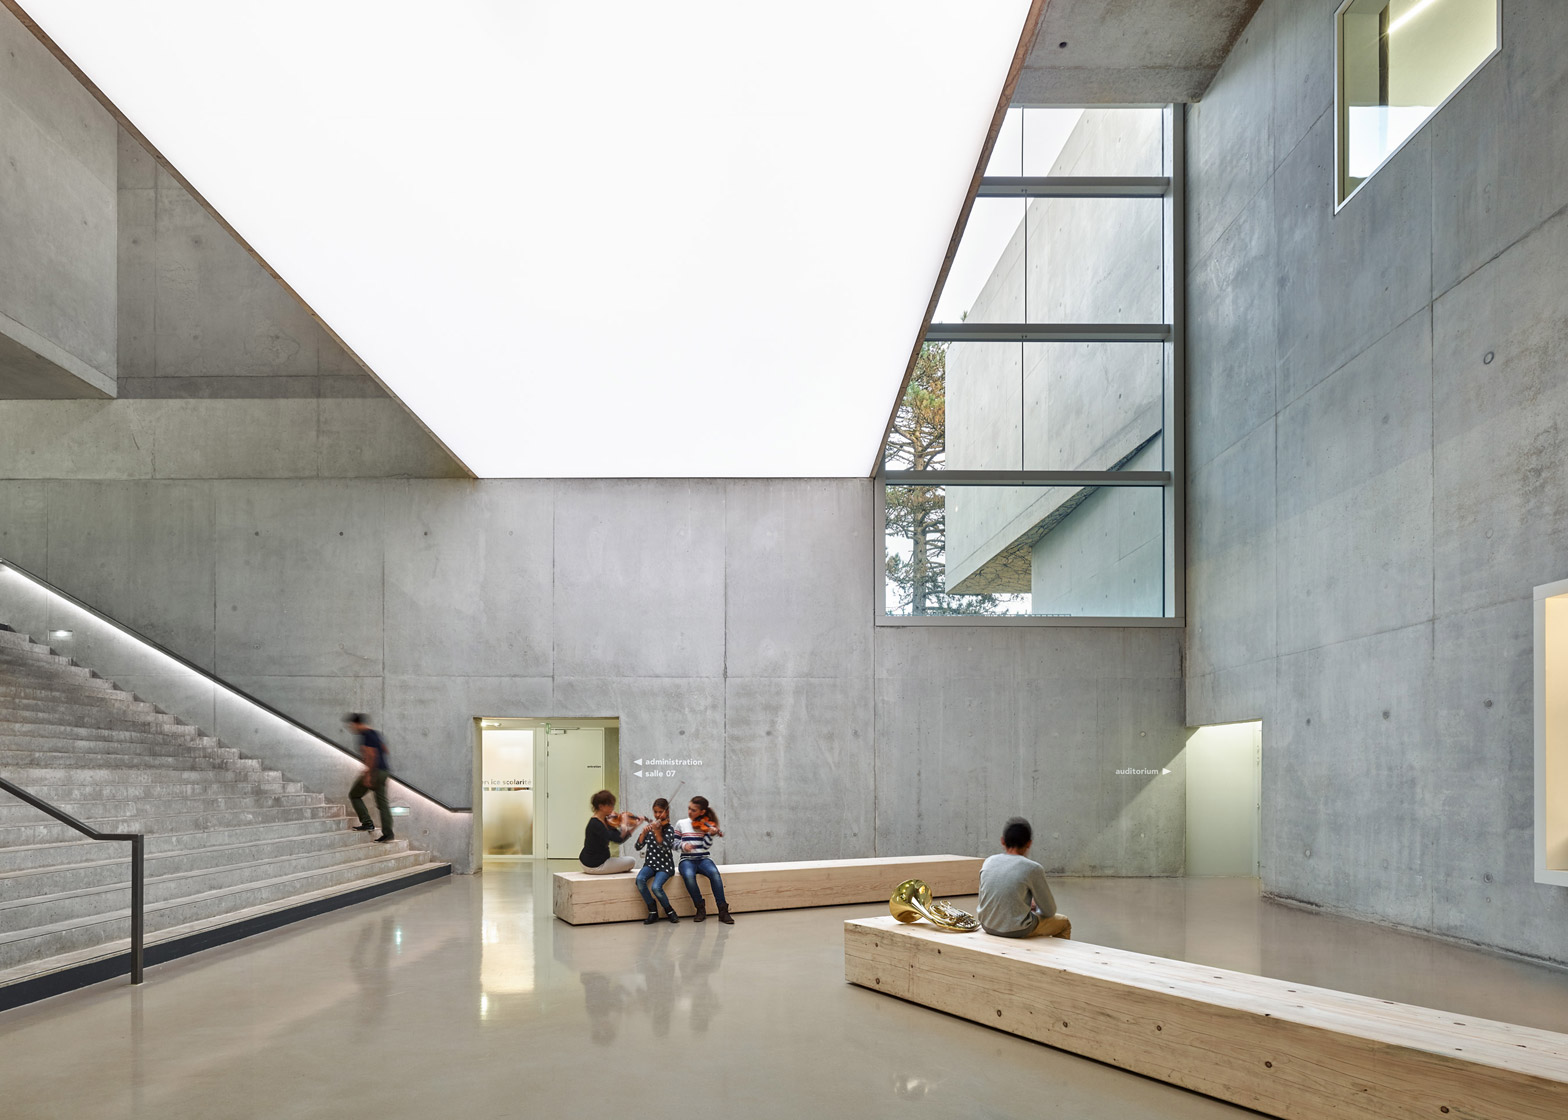 Music school in Belfort by Dominique Coulon & Associes